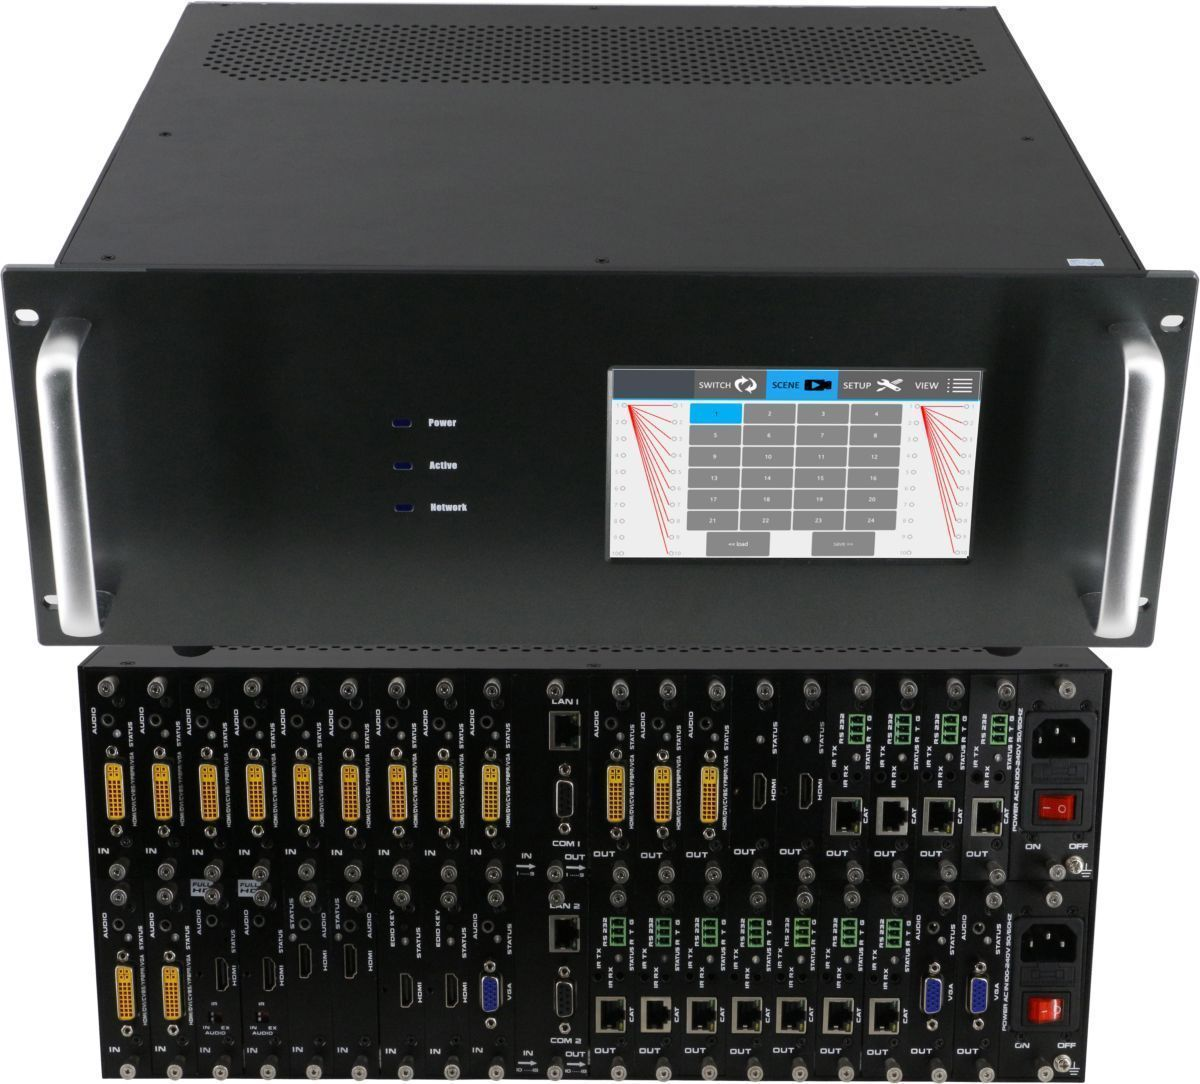 4K 10x16 HDMI Matrix Switcher with Color Touchscreen